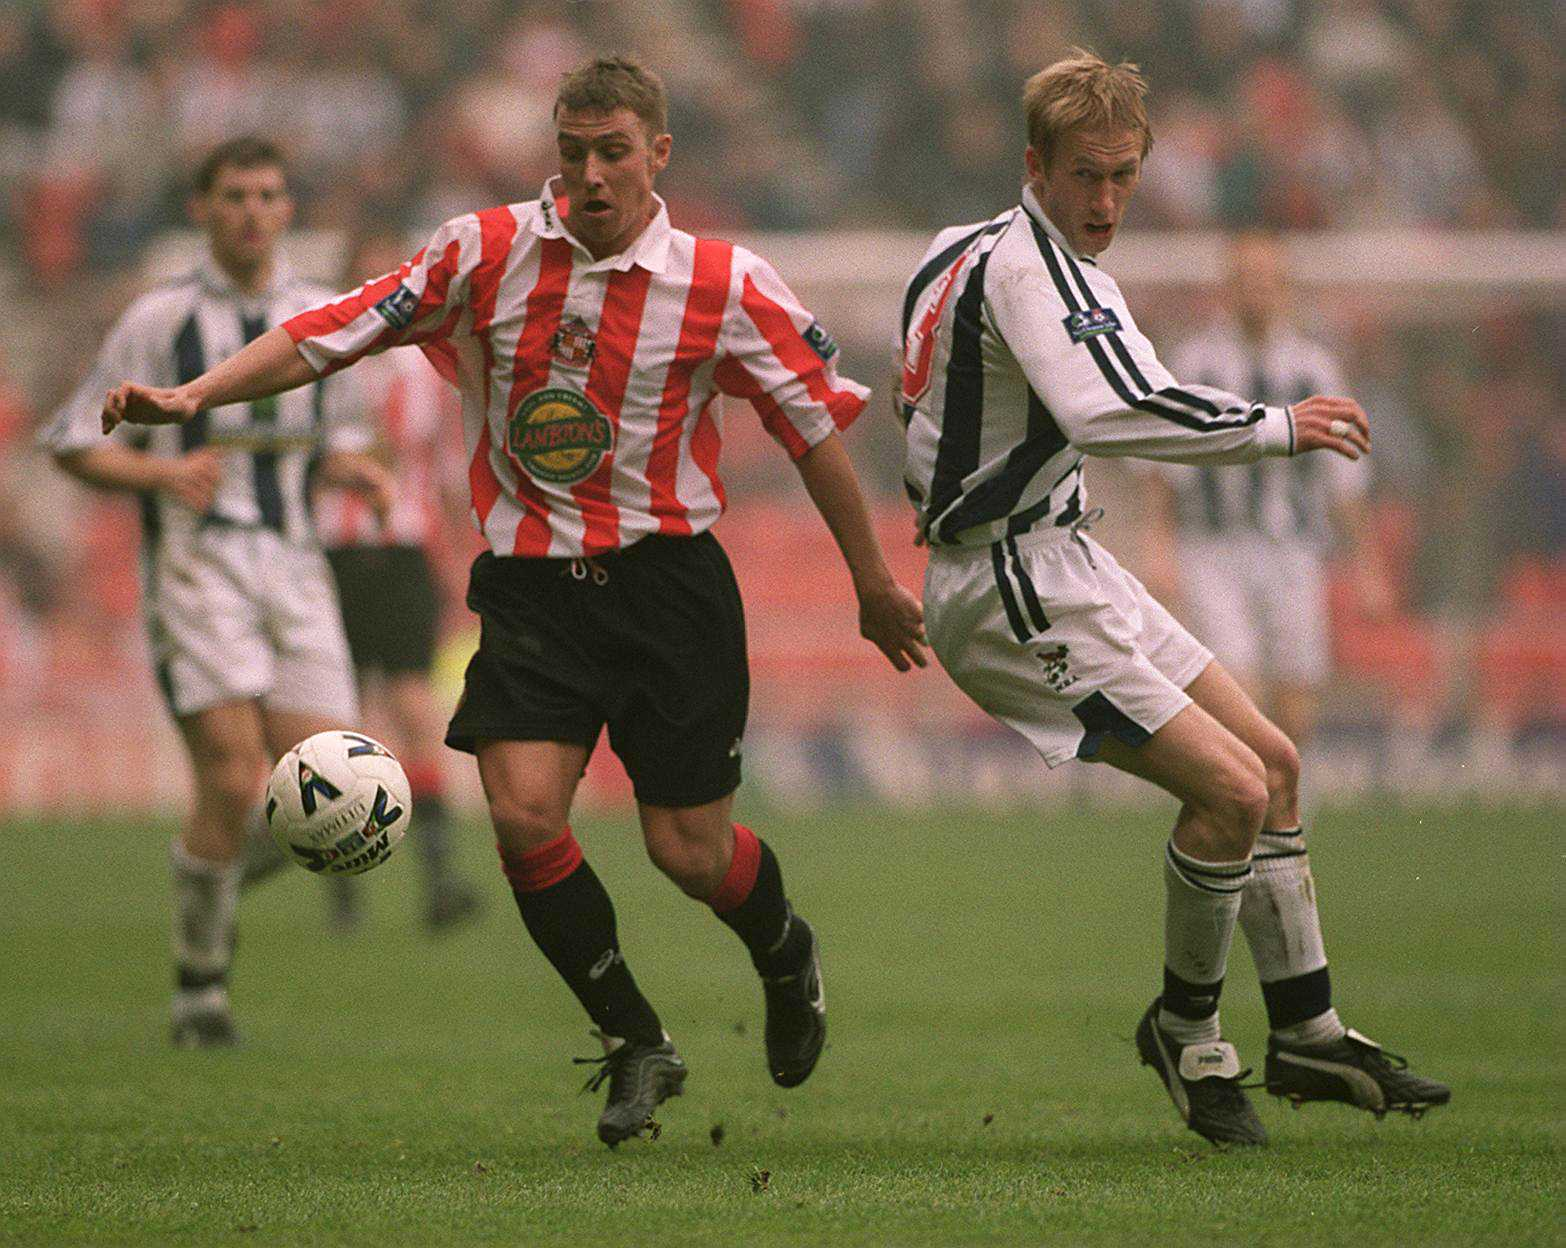 Soccer - Nationwide League Division One - Sunderland v West Bromwich Albion